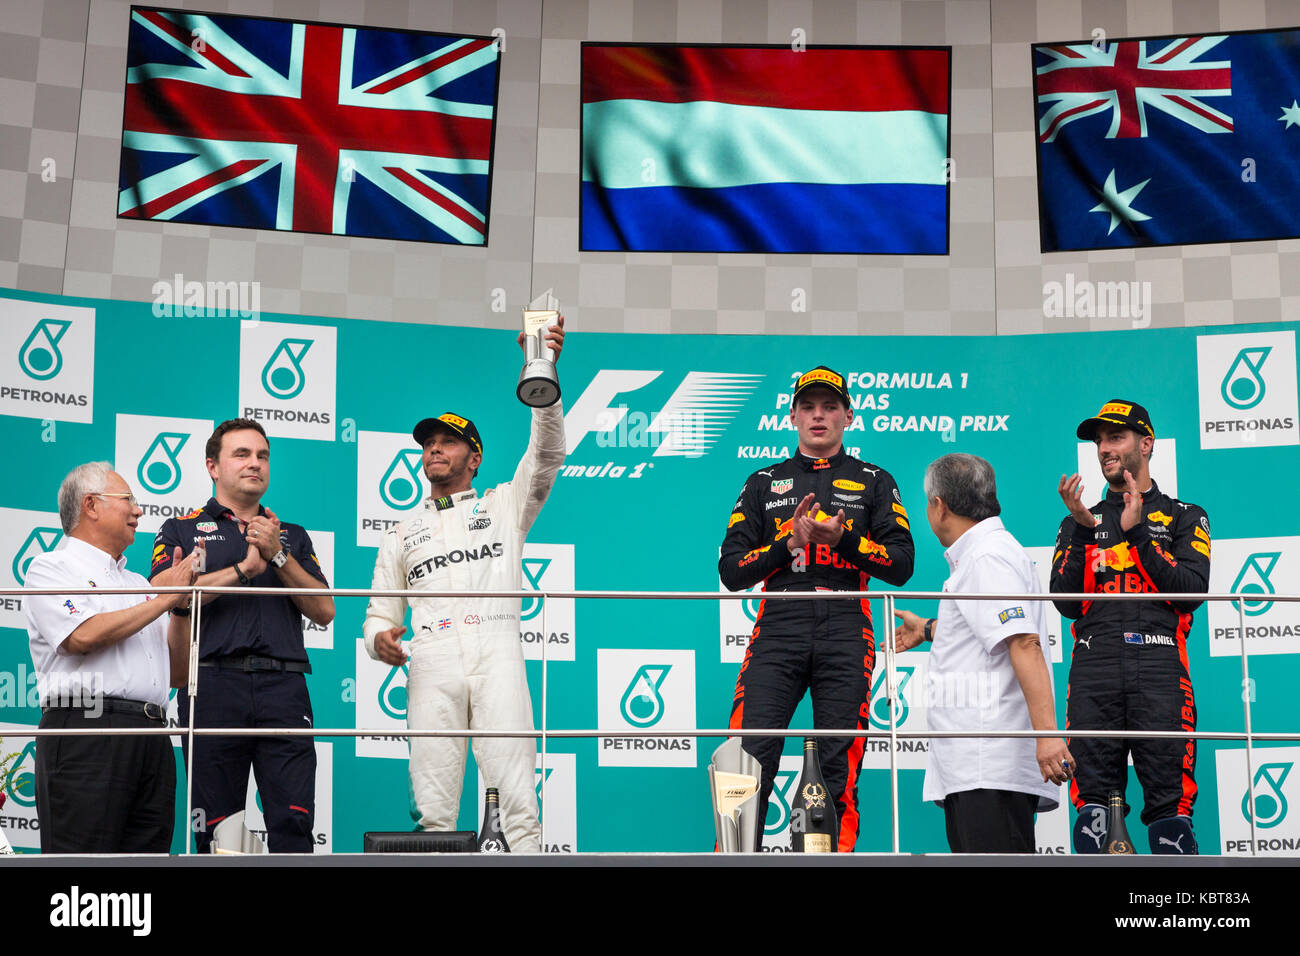 Lewis Hamilton (L) from Mercedes, Max Verstappen (C) and Daniel Ricciardo (R) from RBR TAG Heuer celebrate their victory in the F1 Grand Prix at the Sepang F1 circuit. Verstappen finished the race in the first position, Hamilton came second and Ricciardo won the 3rd place. On October 01, 2017 in Kuala Lumpur, Malaysia. Stock Photo